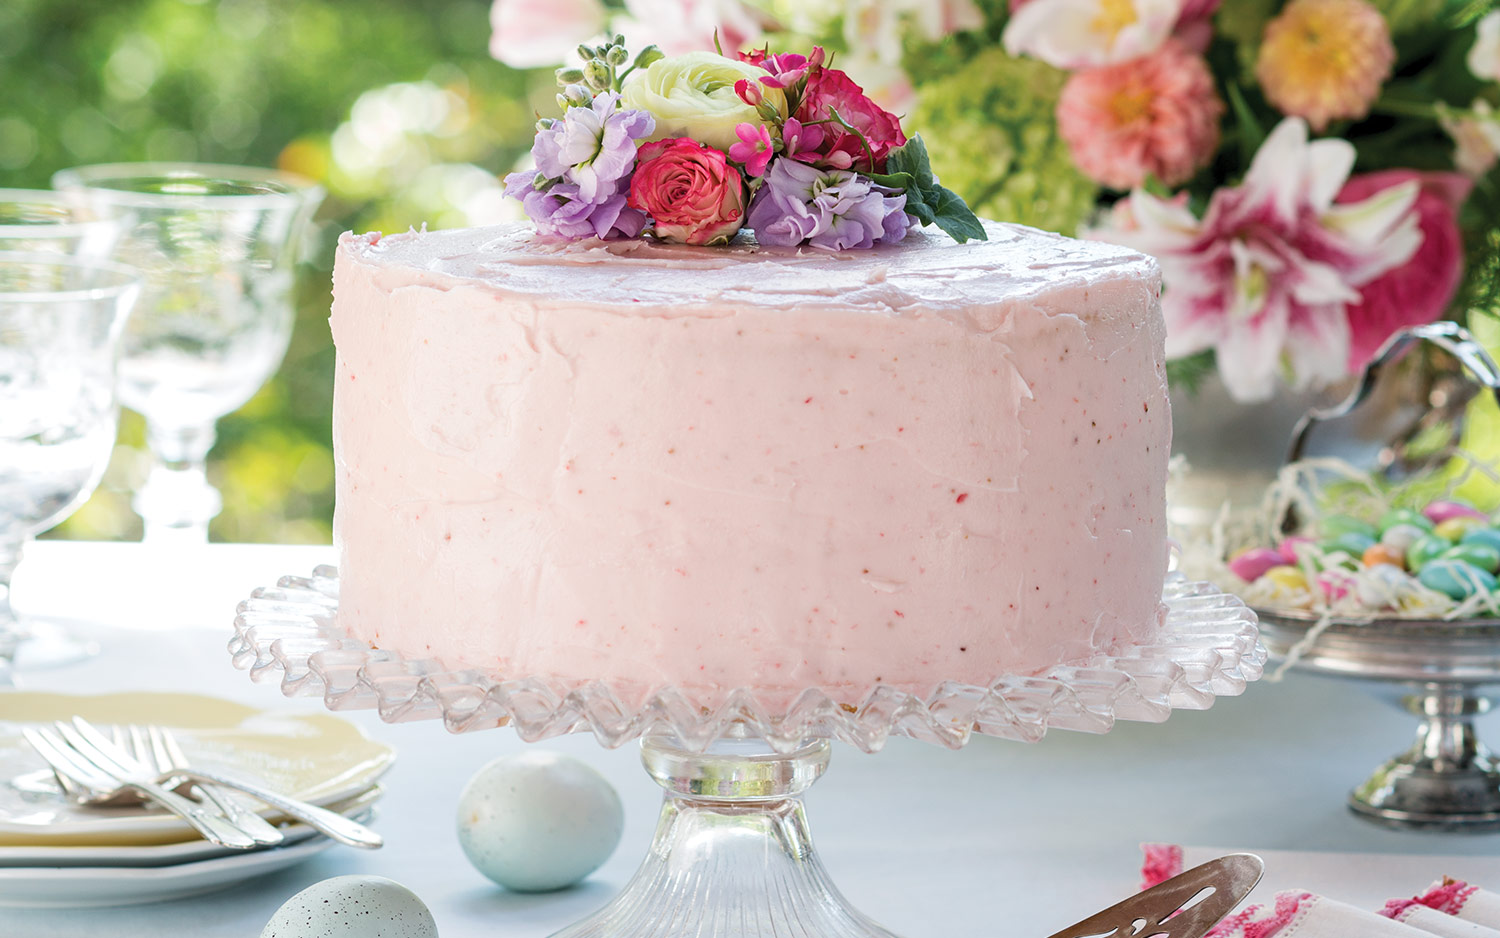 Springtime Strawberry Cake